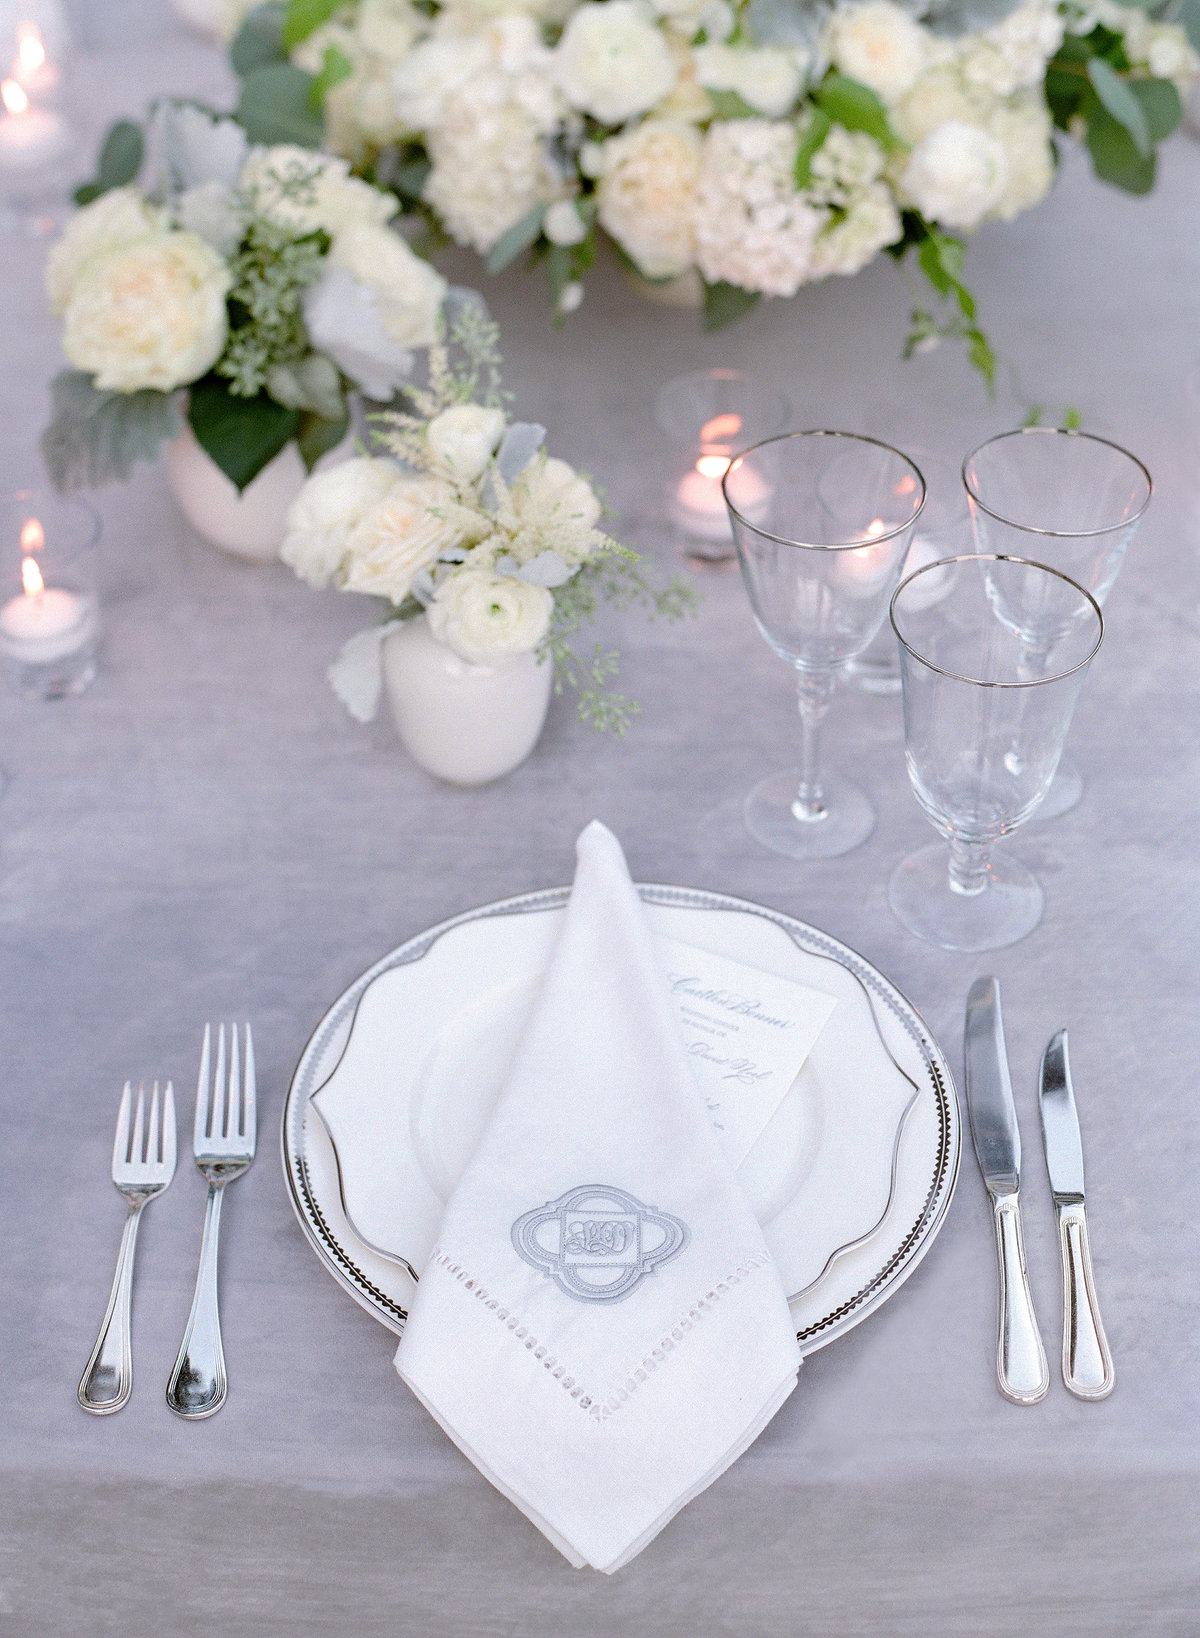 Grey tablescape for Cavallo Point wedding by Jenny Schneider Events.